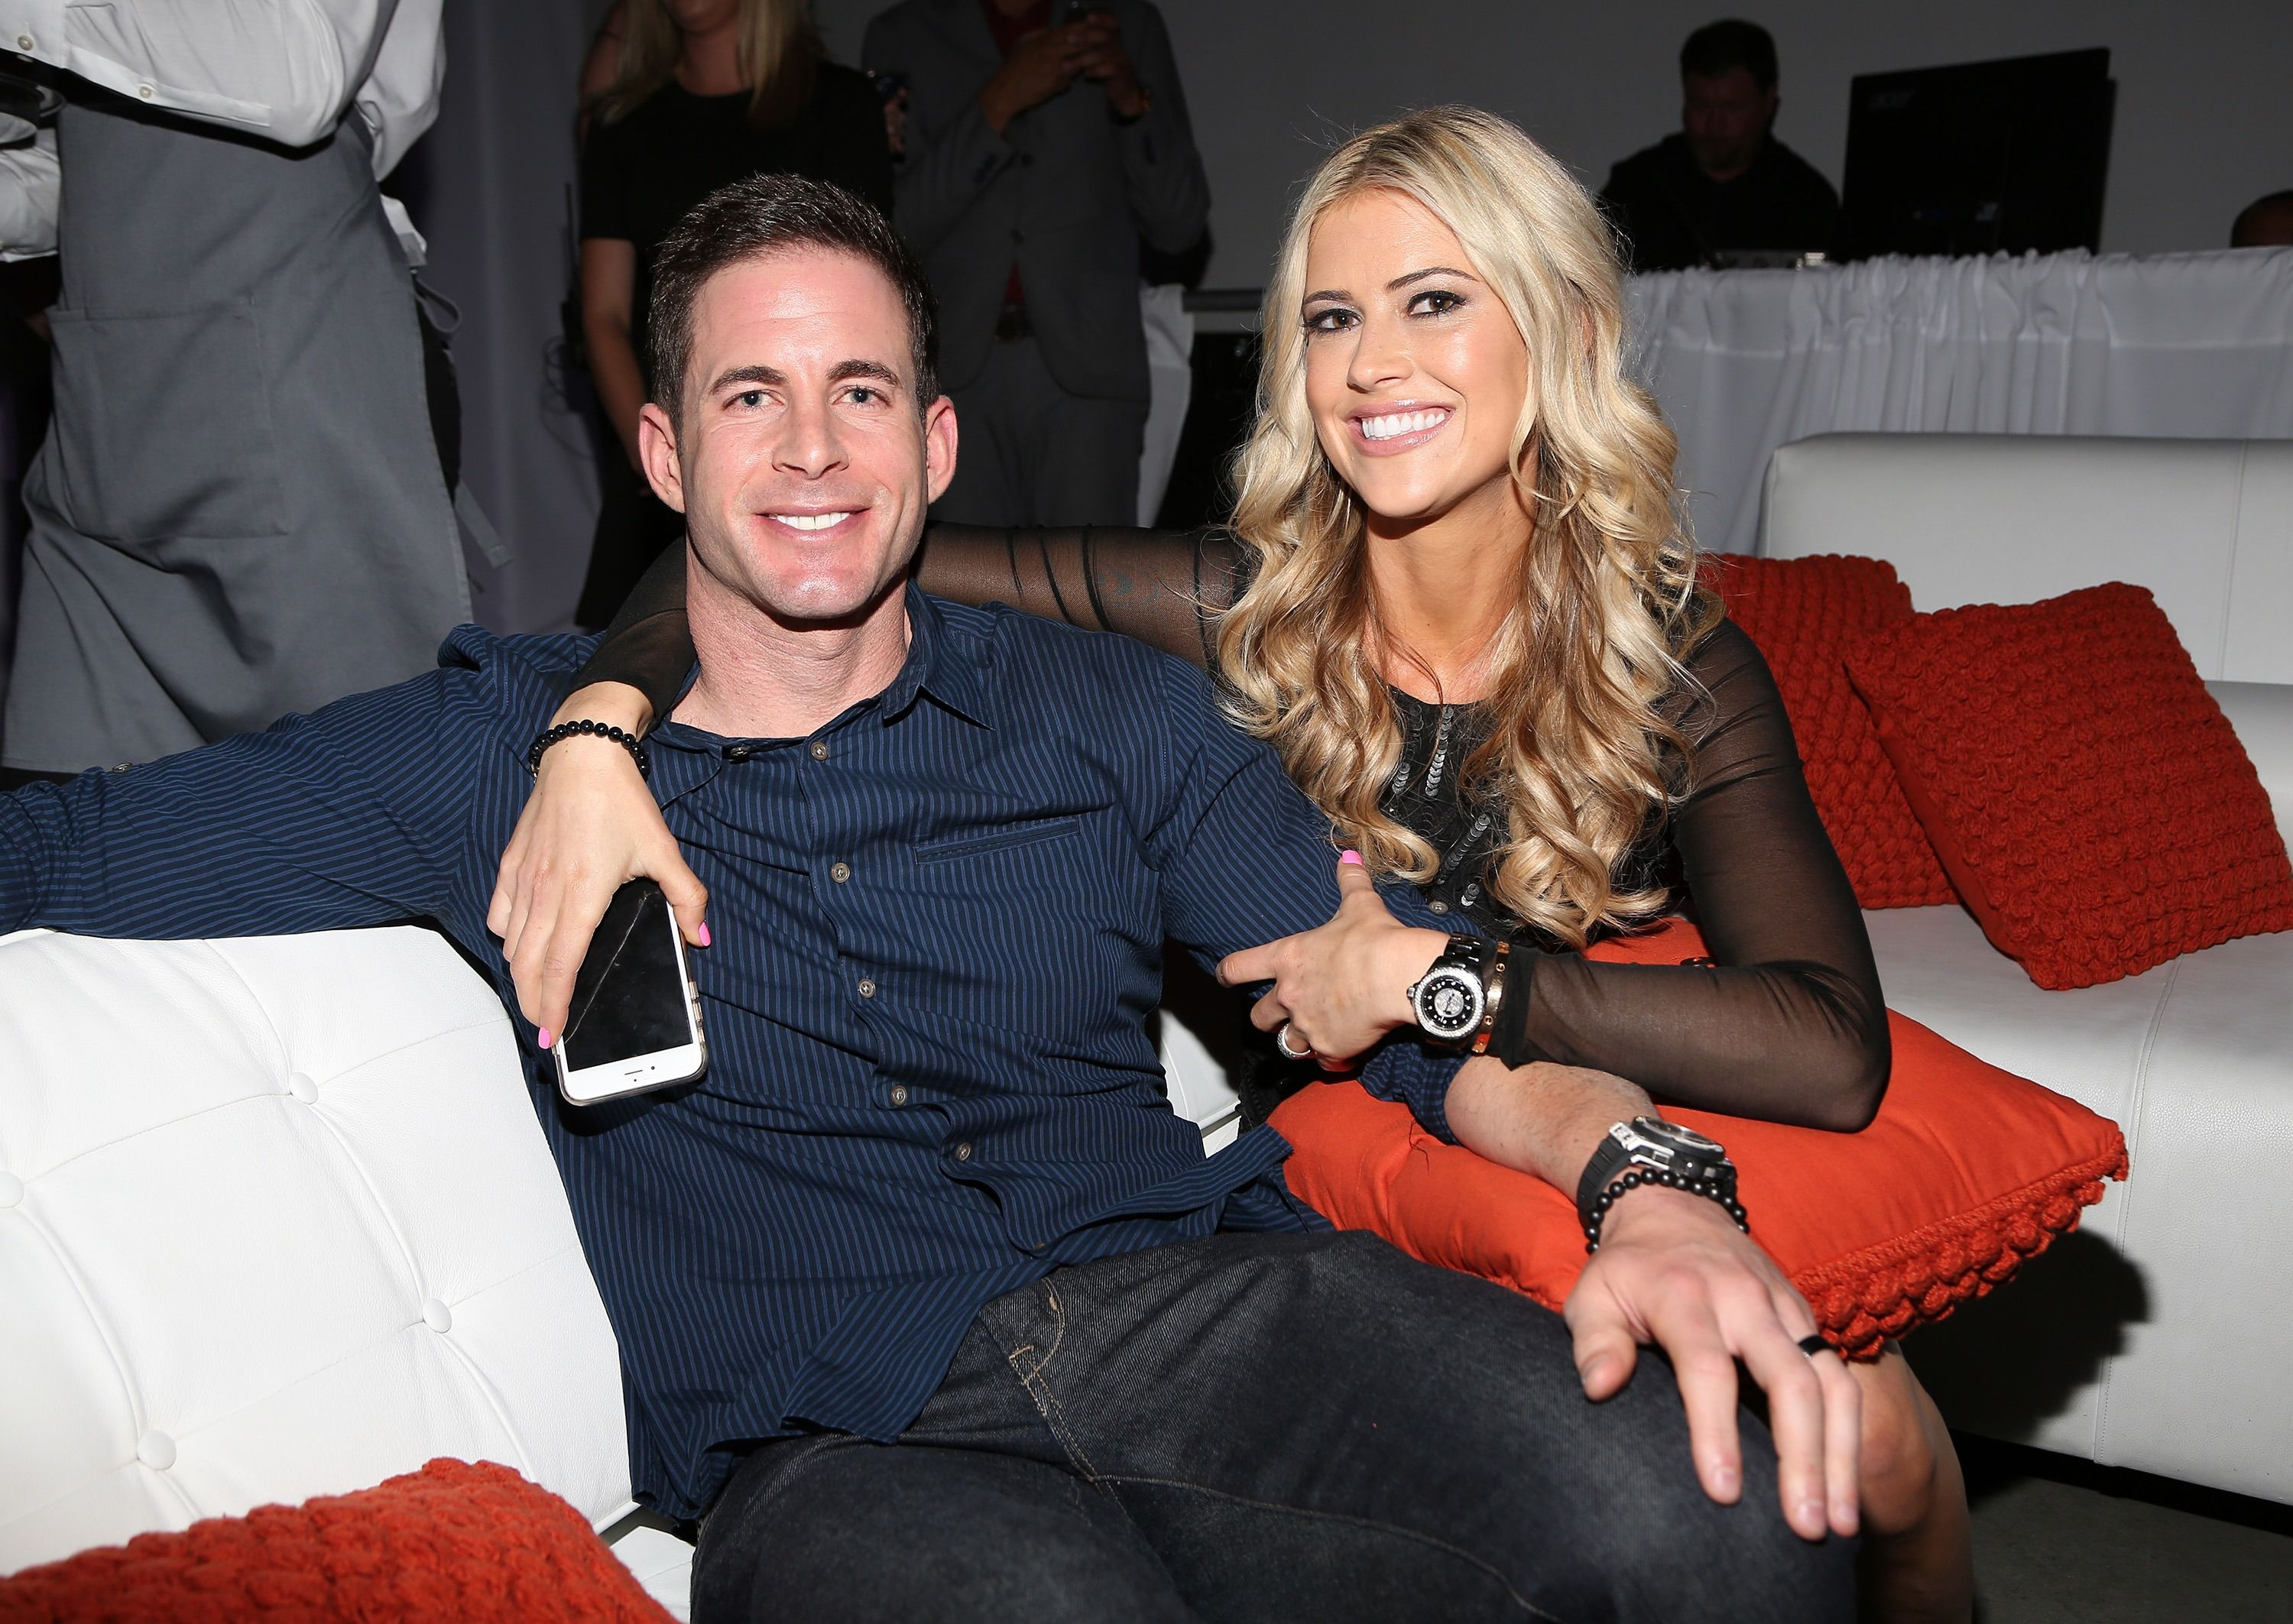 a92eb16f4dd9 Flip or Flop  Divorce - Why Did Christina   Tarek El Moussa Split